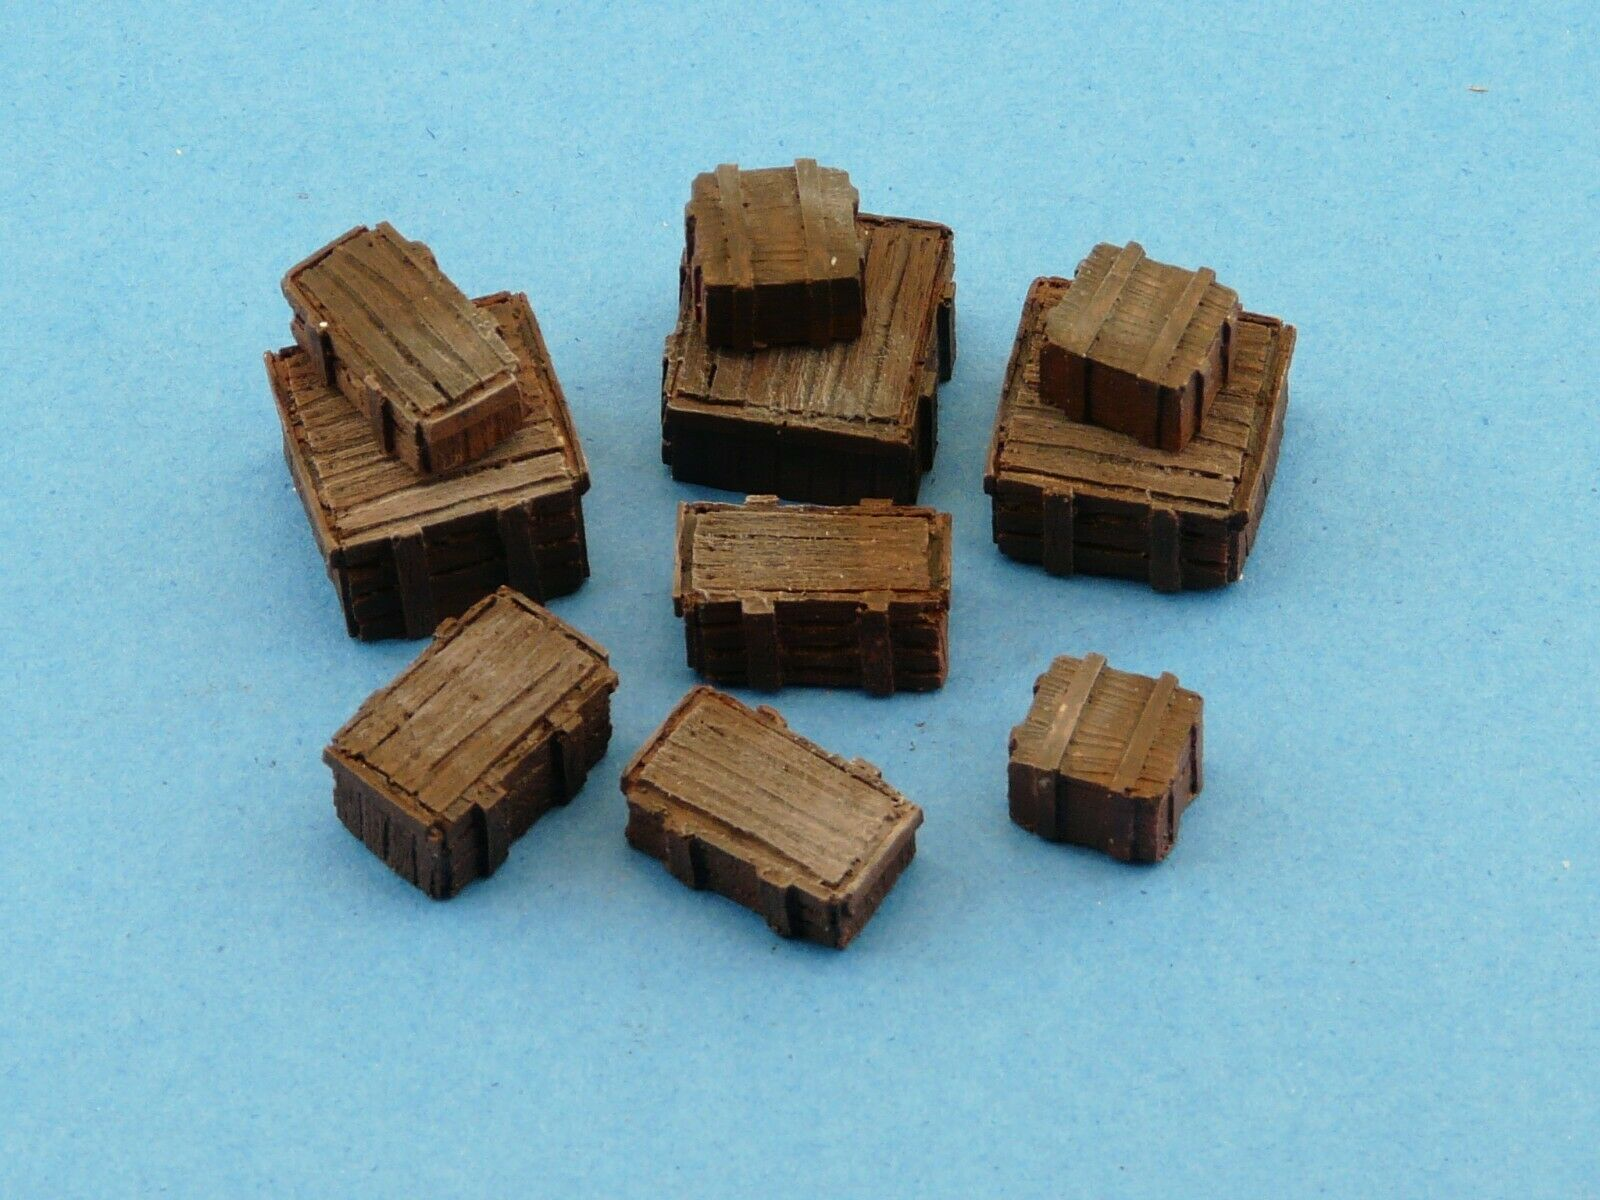 28mm  Crates Set -  Wargames Scenery  - Warhammer Wooden Boxes - 10 Pieces - - redoguk